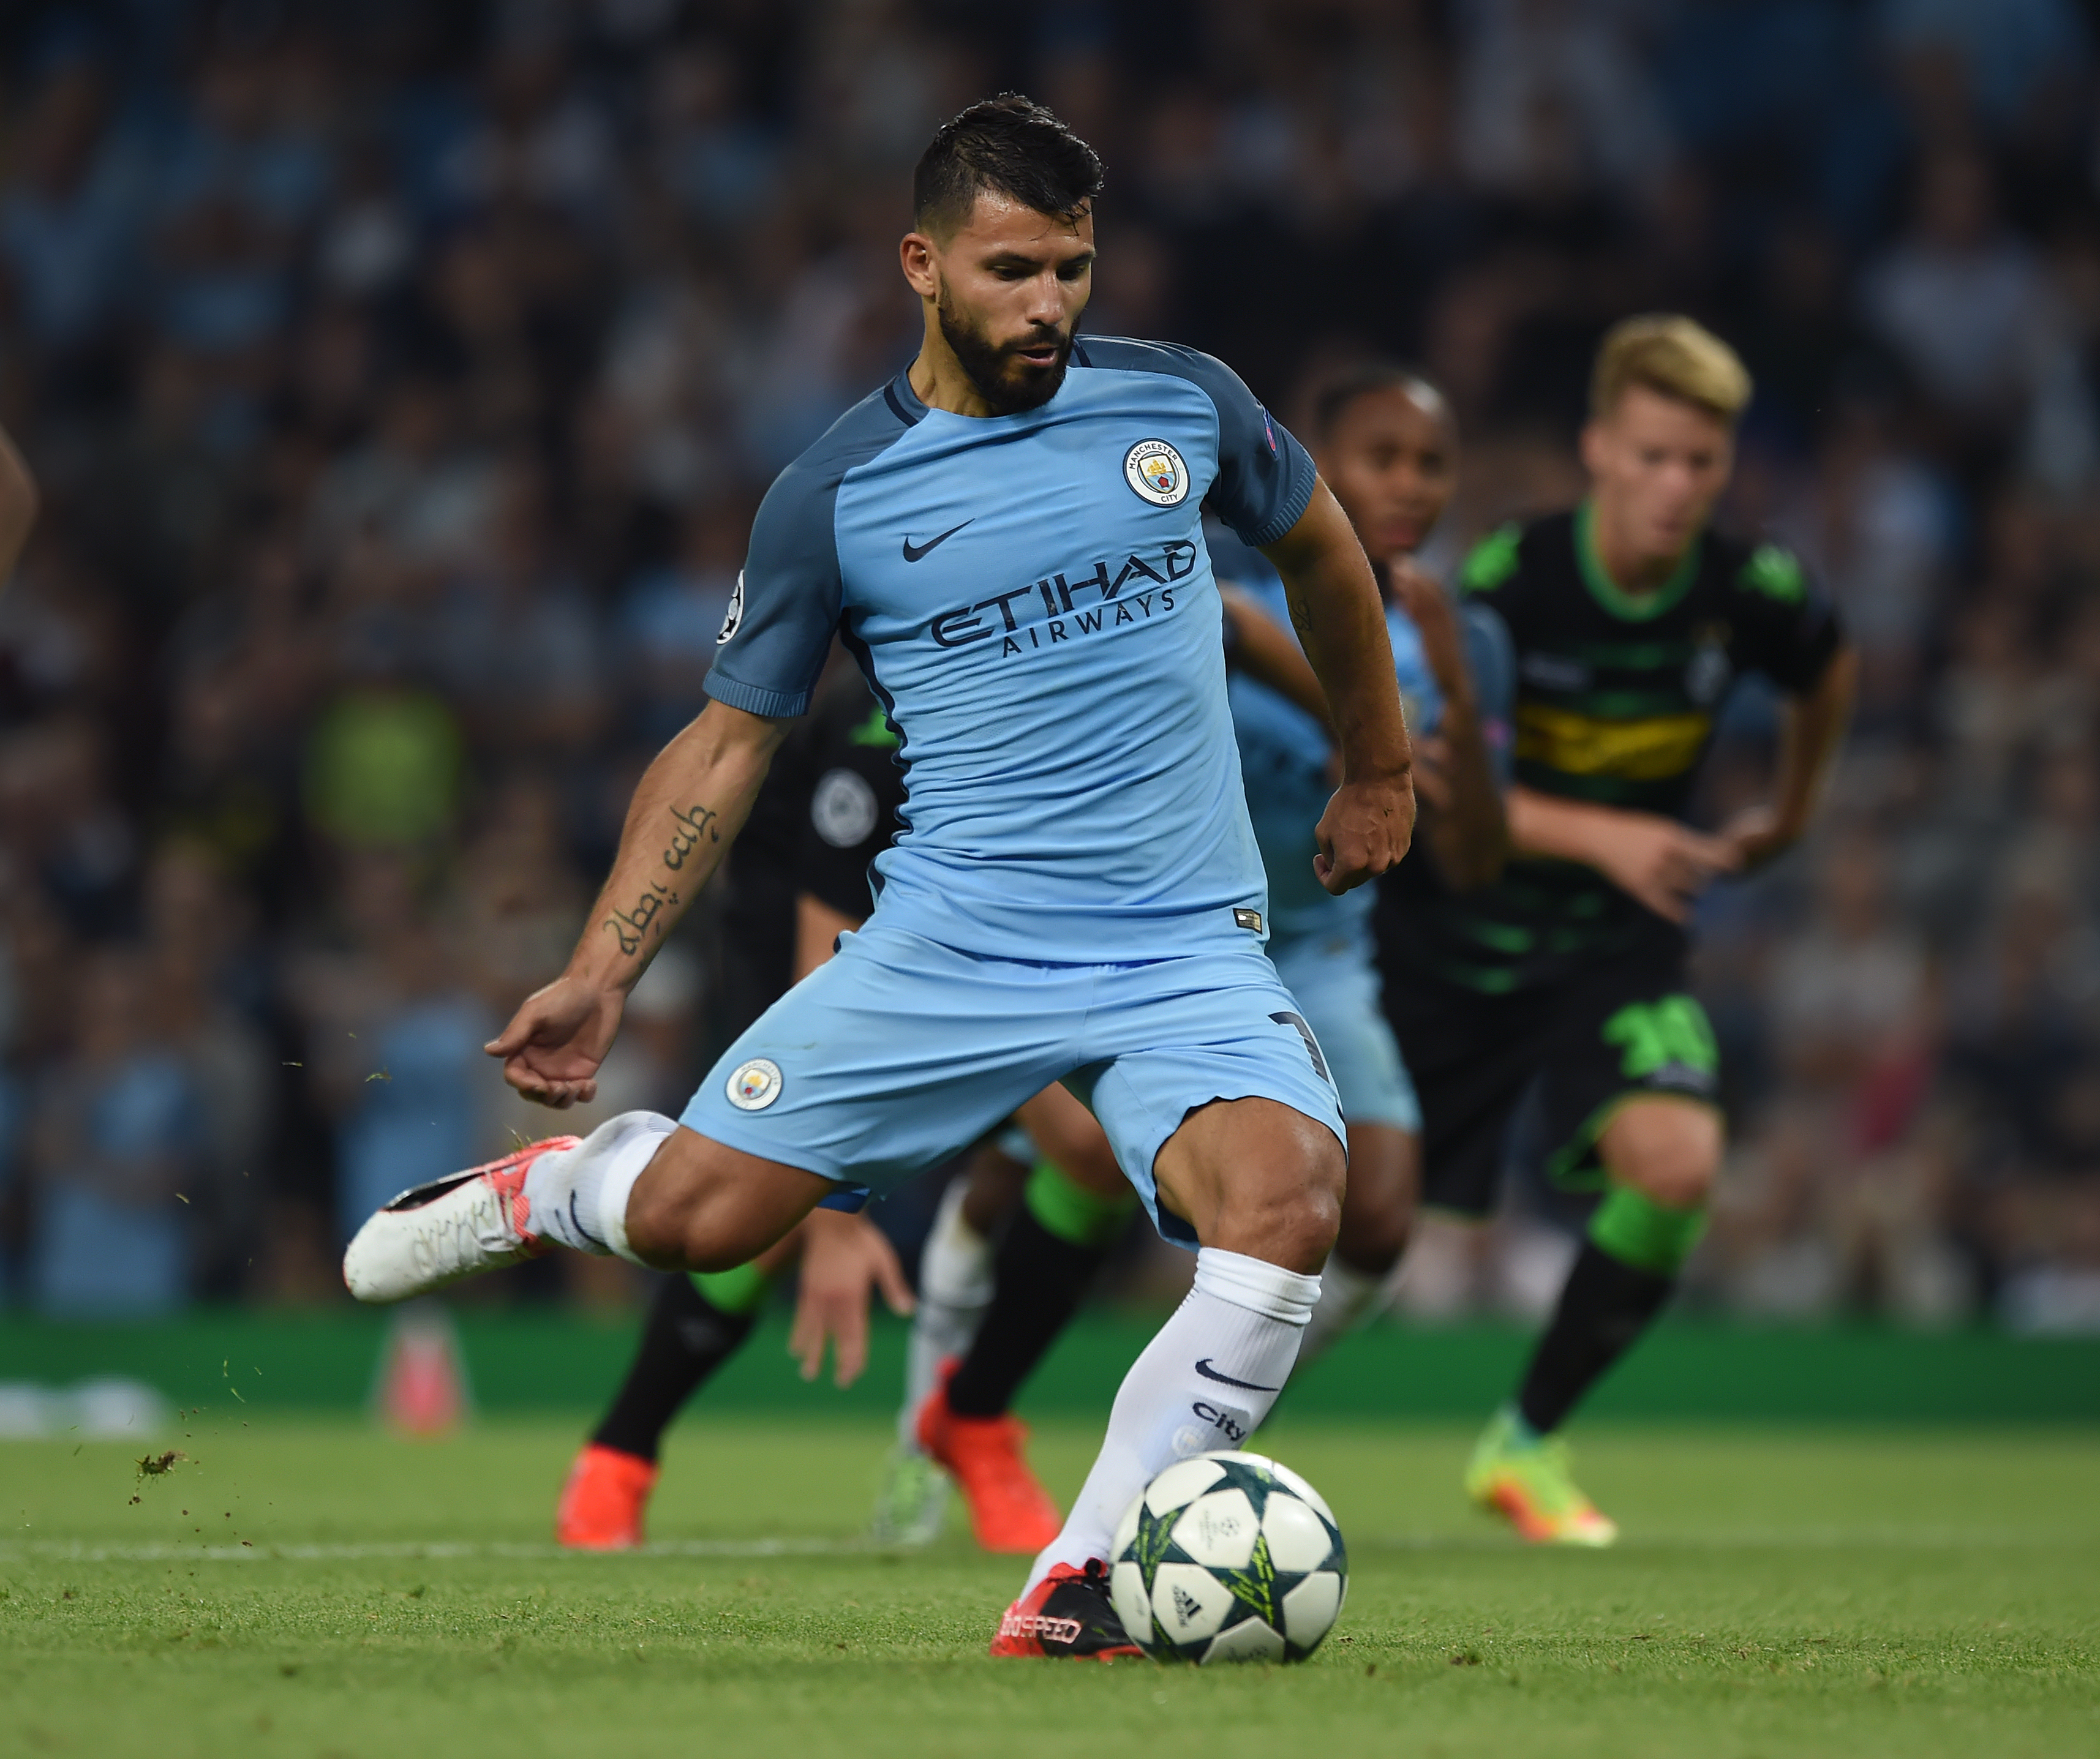 Arsenal Vs Psg Score Reaction From 2016 Champions: Celtic Vs. Manchester City Live Stream: Watch Champions